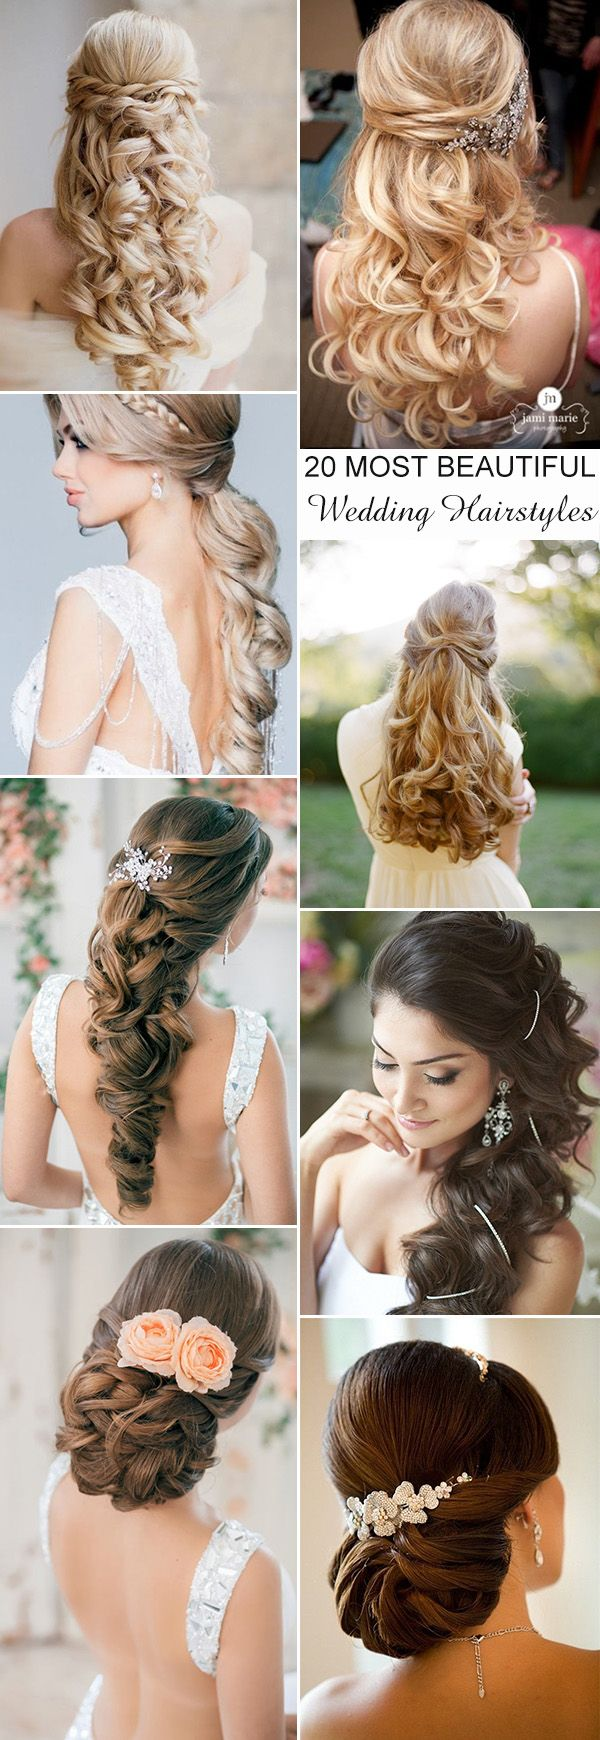 Discussion on this topic: 20 Beautiful Hairstyles for Prom, 20-beautiful-hairstyles-for-prom/